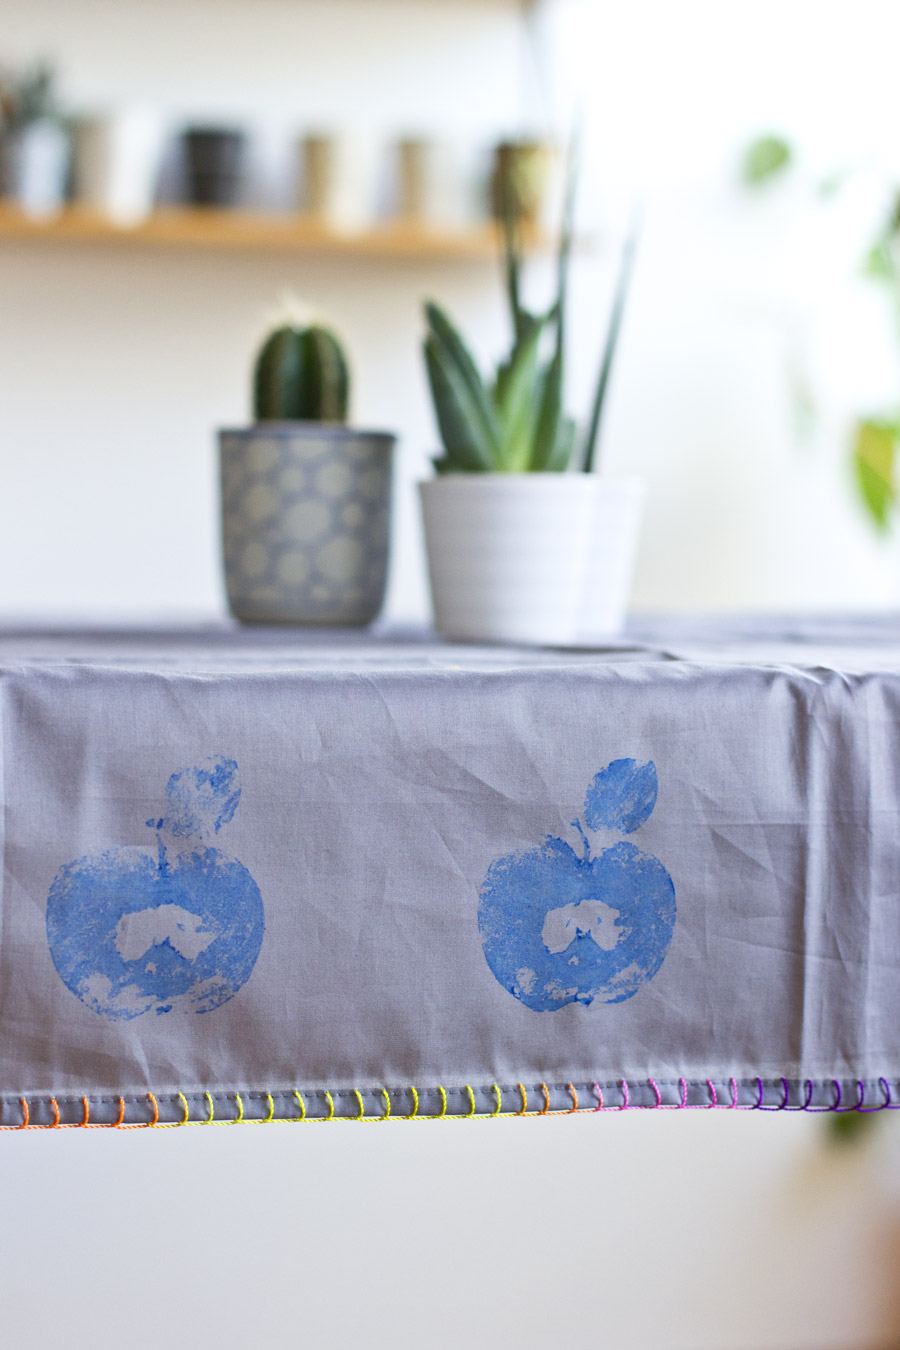 Printing with fruit is fun and easy – and can create something really useful like this fruit printed table cloth.